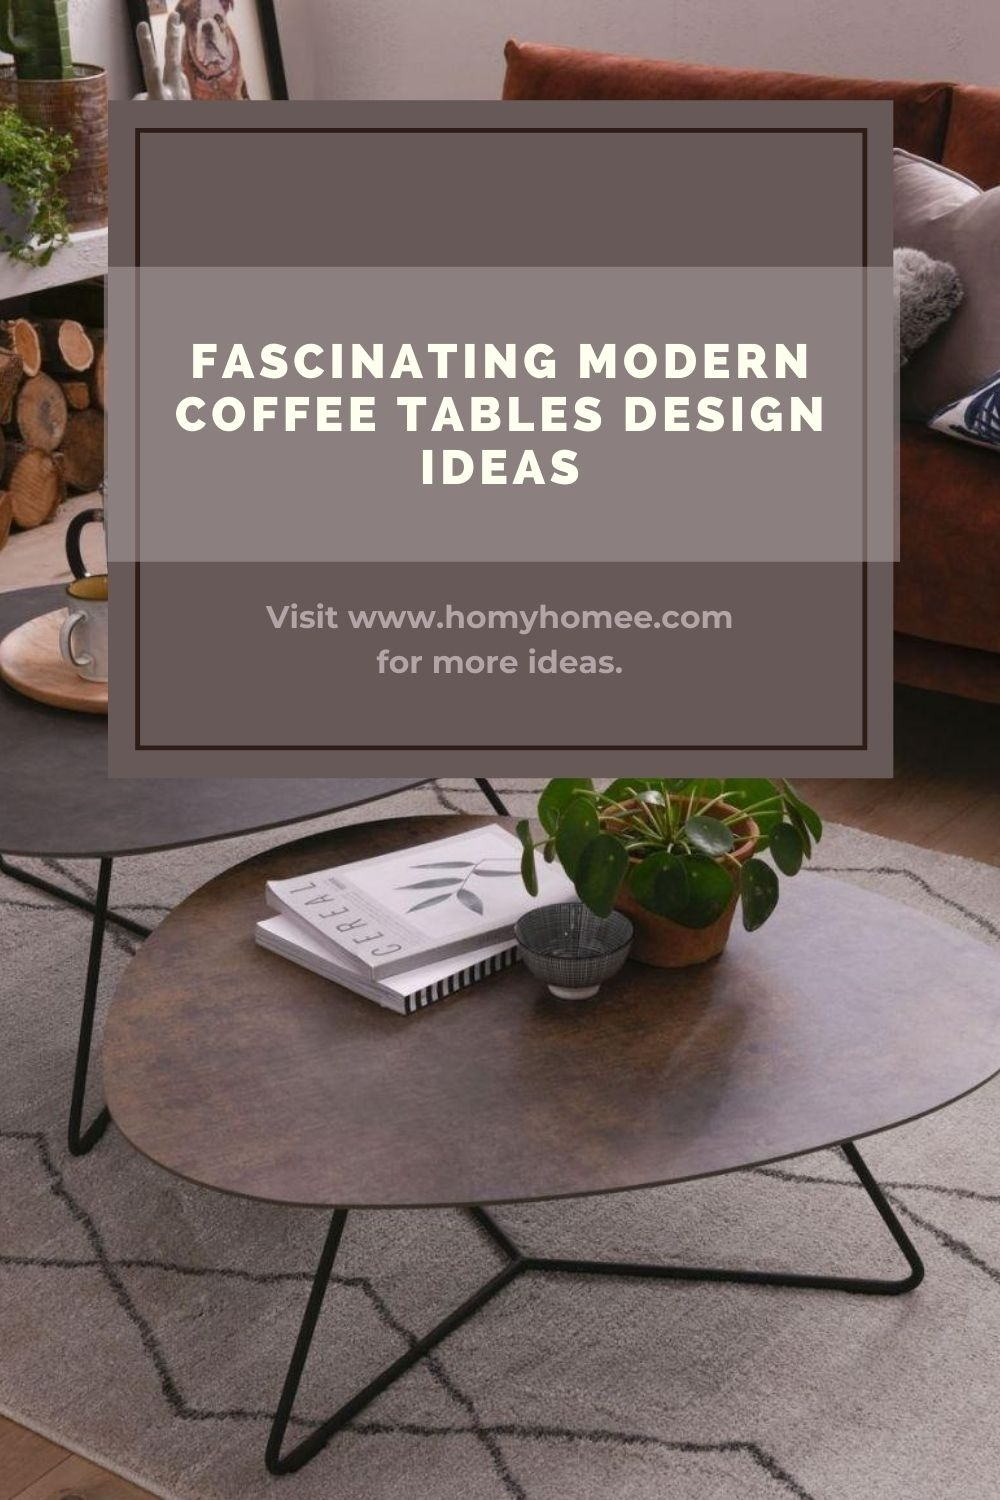 Fascinating Modern Coffee Tables Design Ideas